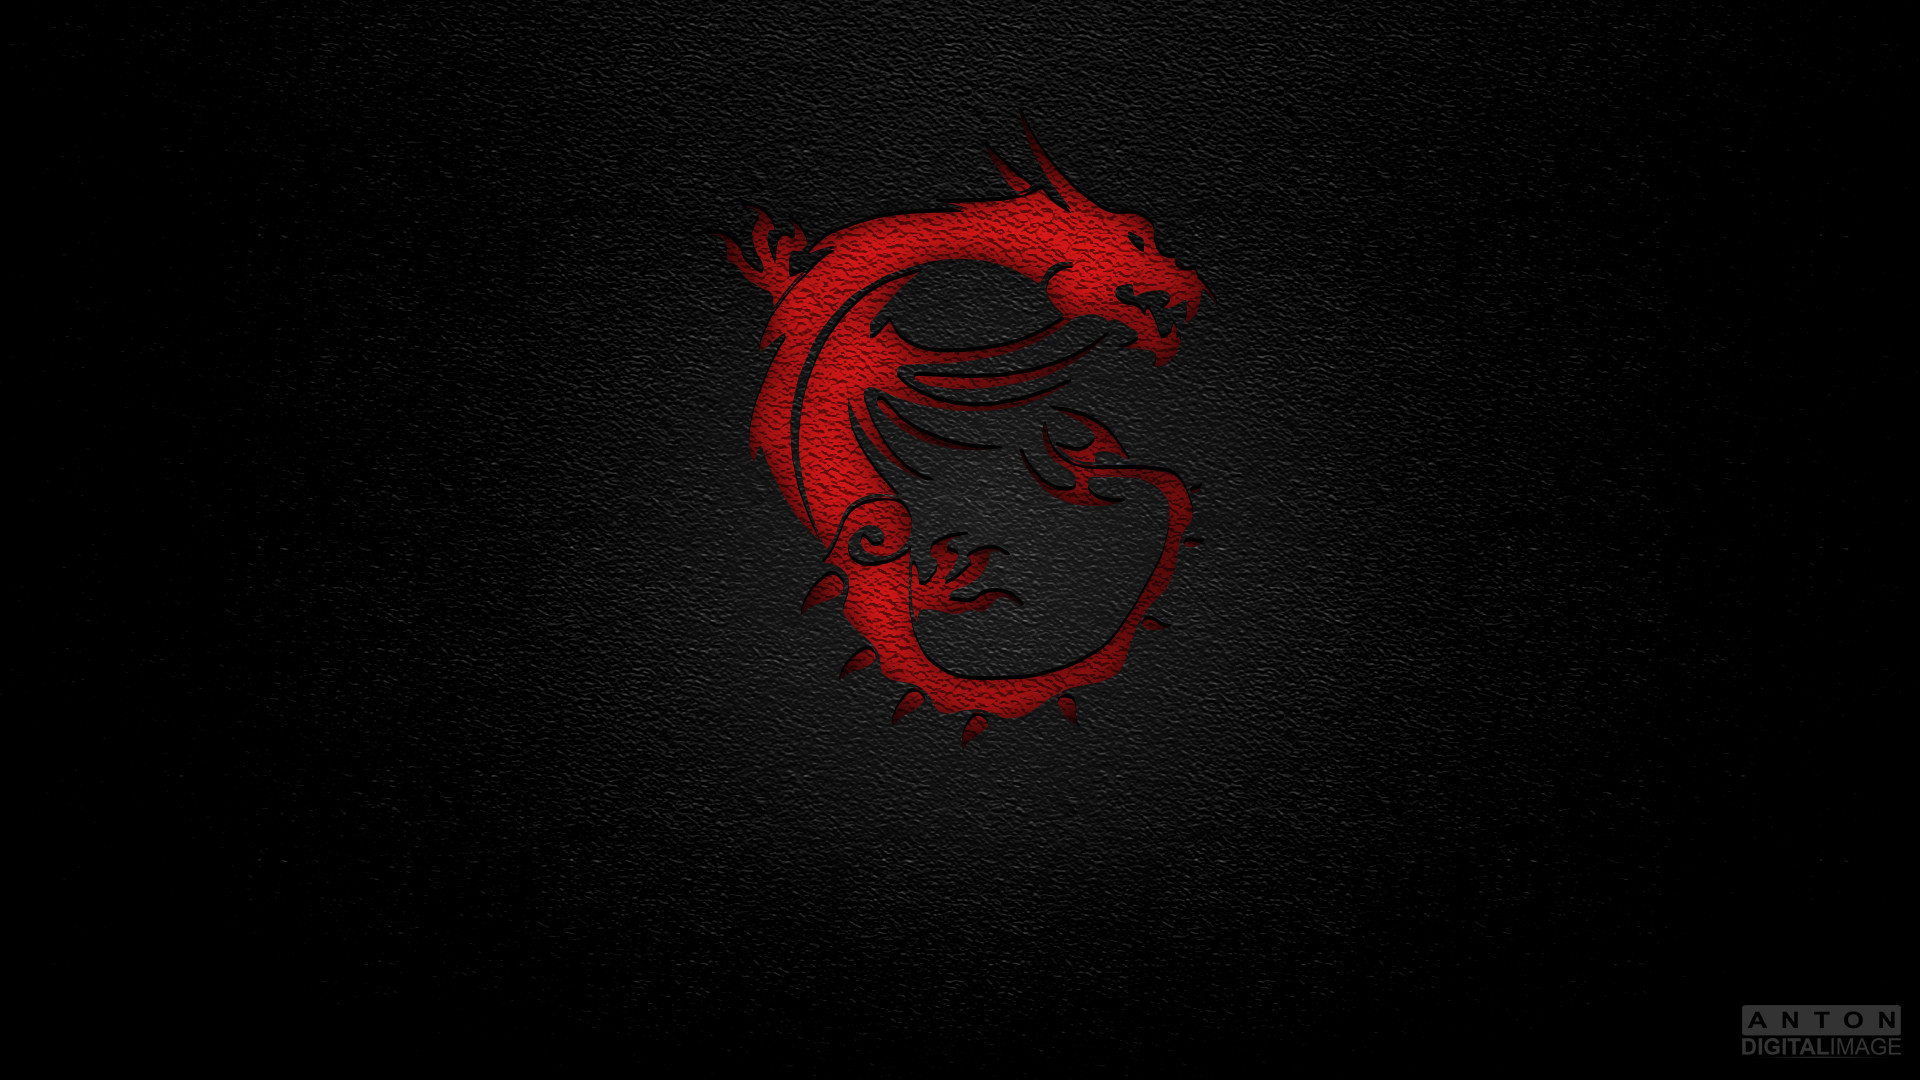 MSI Dragon Gaming Series Wallpaper 1080p by Thony32 on DeviantArt